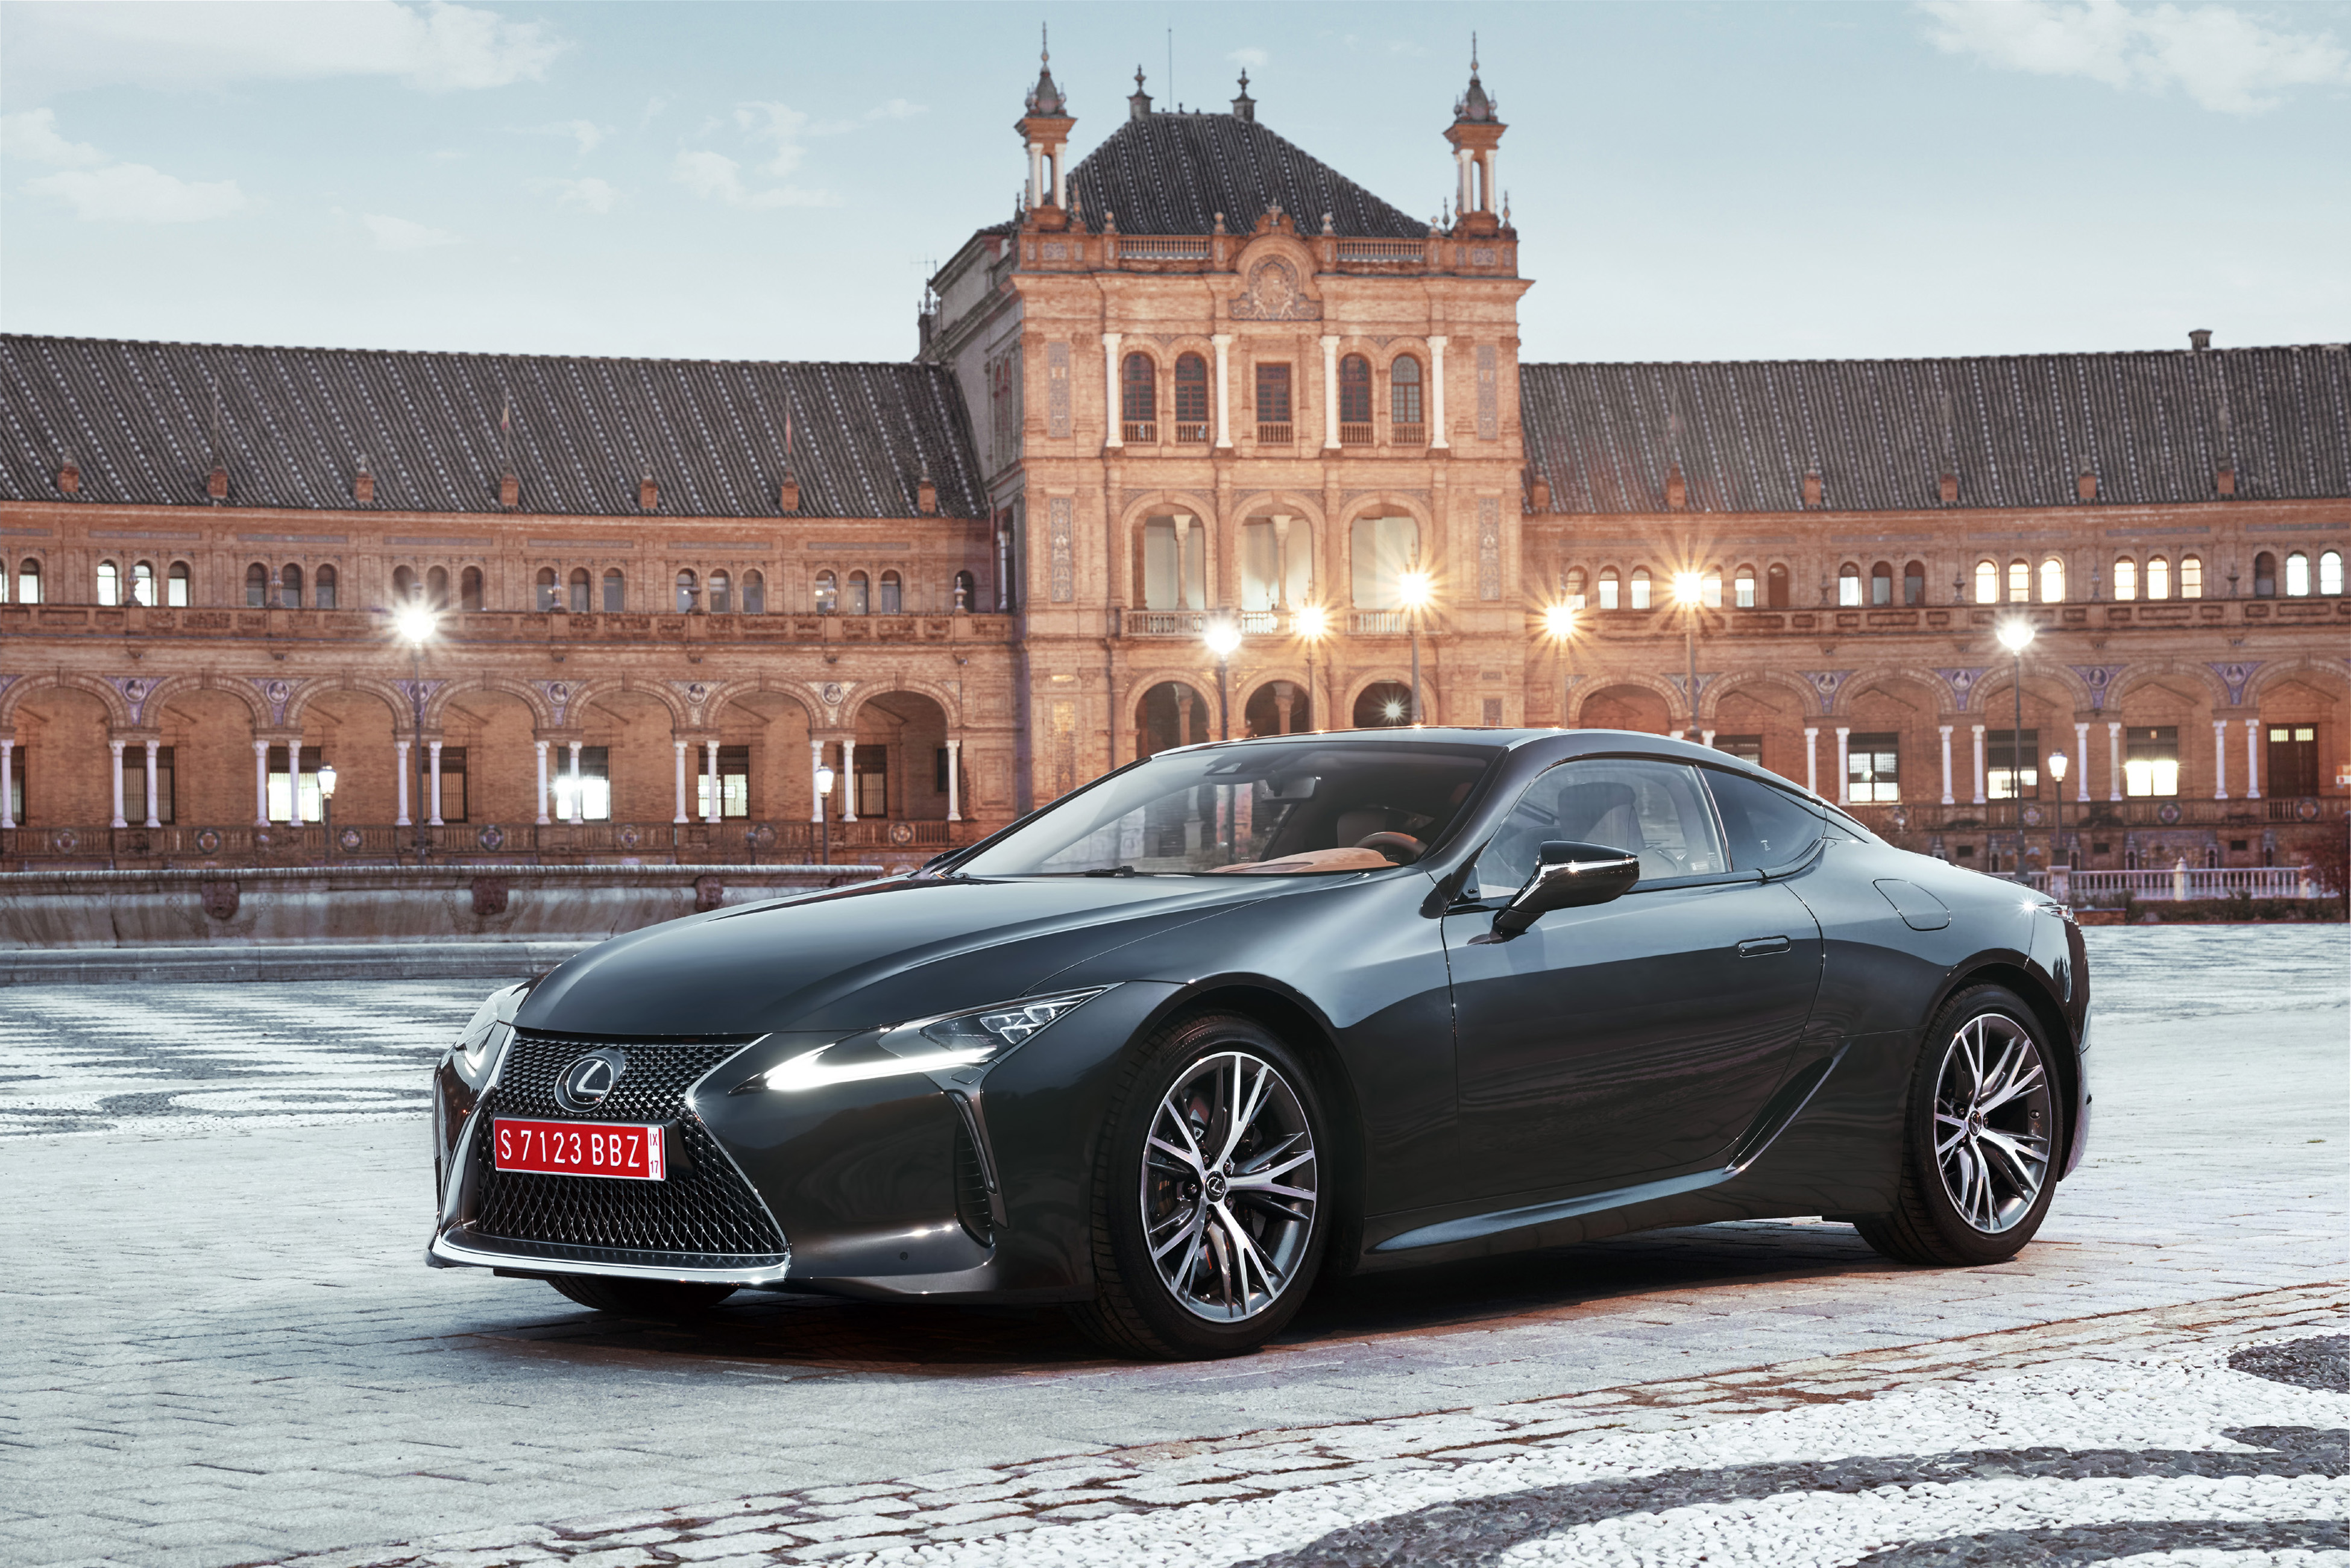 The LC is a new flagship 2+2 performance coupe for Lexus' global model range, not only showcasing the qualities of design, beauty, engineering and advanced technology that define it as a premium vehicle manufacturer, but also symbolizing its ambition as a luxury lifestyle brand. The Lexus LC will go on sale in the U.S. in Spring 2017.